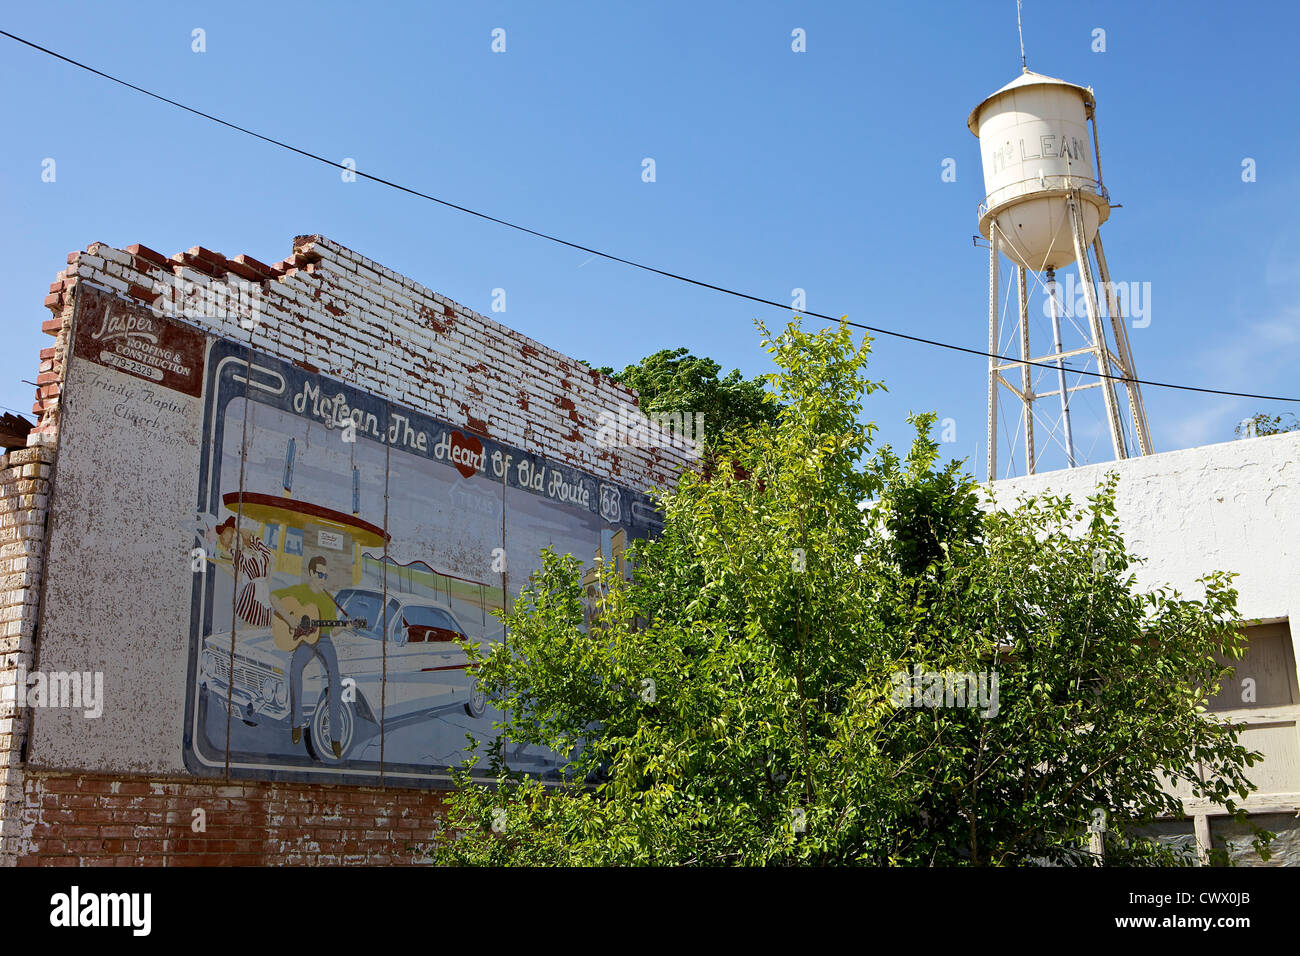 Faded mural on a crumbling wall with a water tower in the background along Route 66 in McLean, Texas - Stock Image